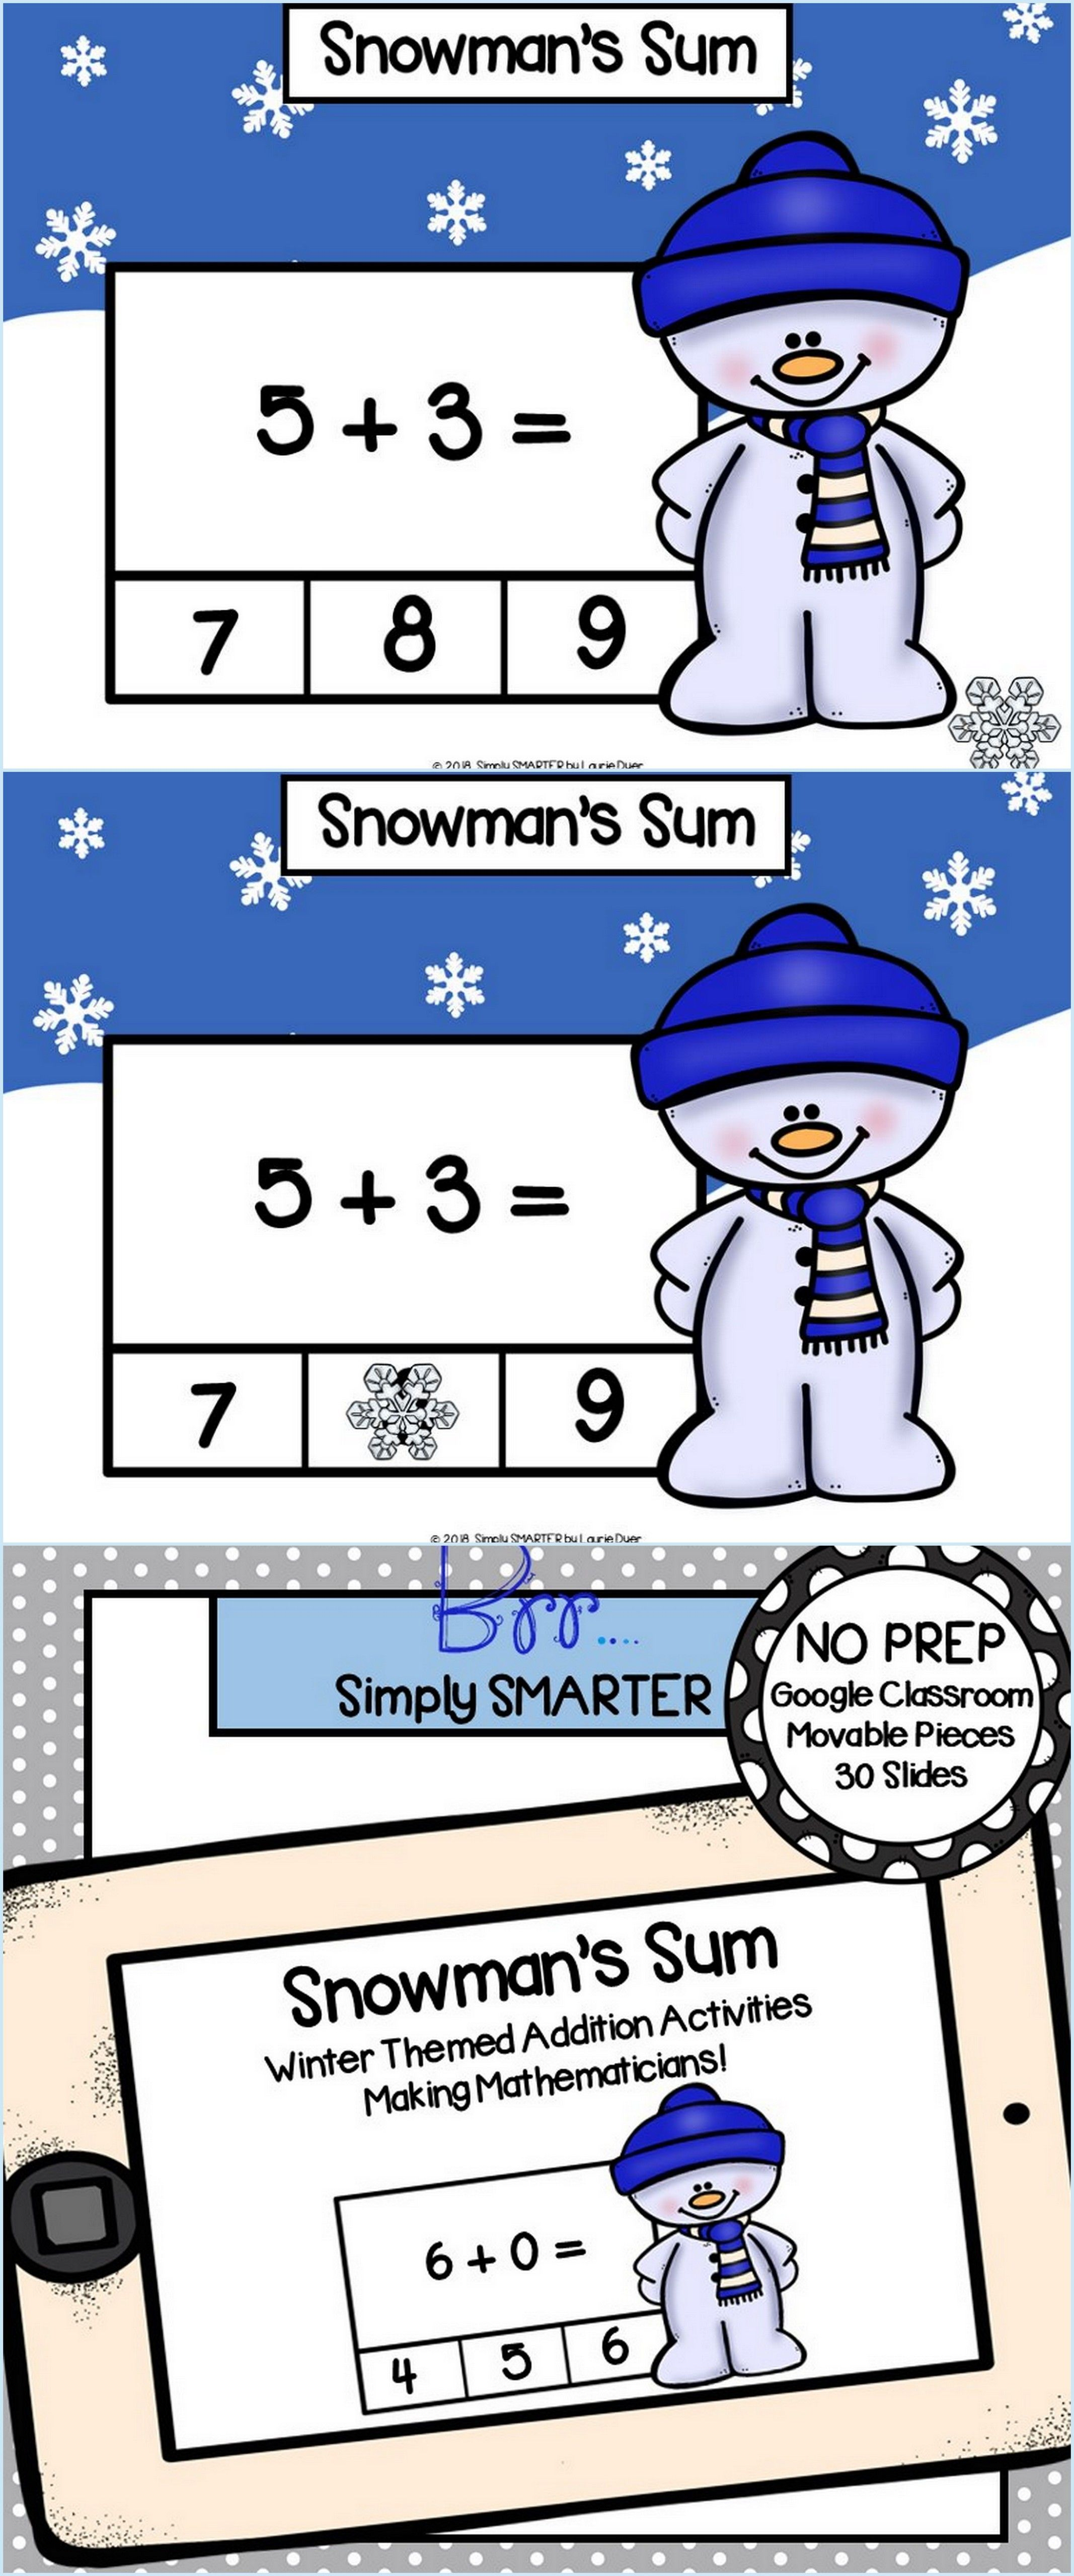 Winter Themed Addition Activities For Classroom